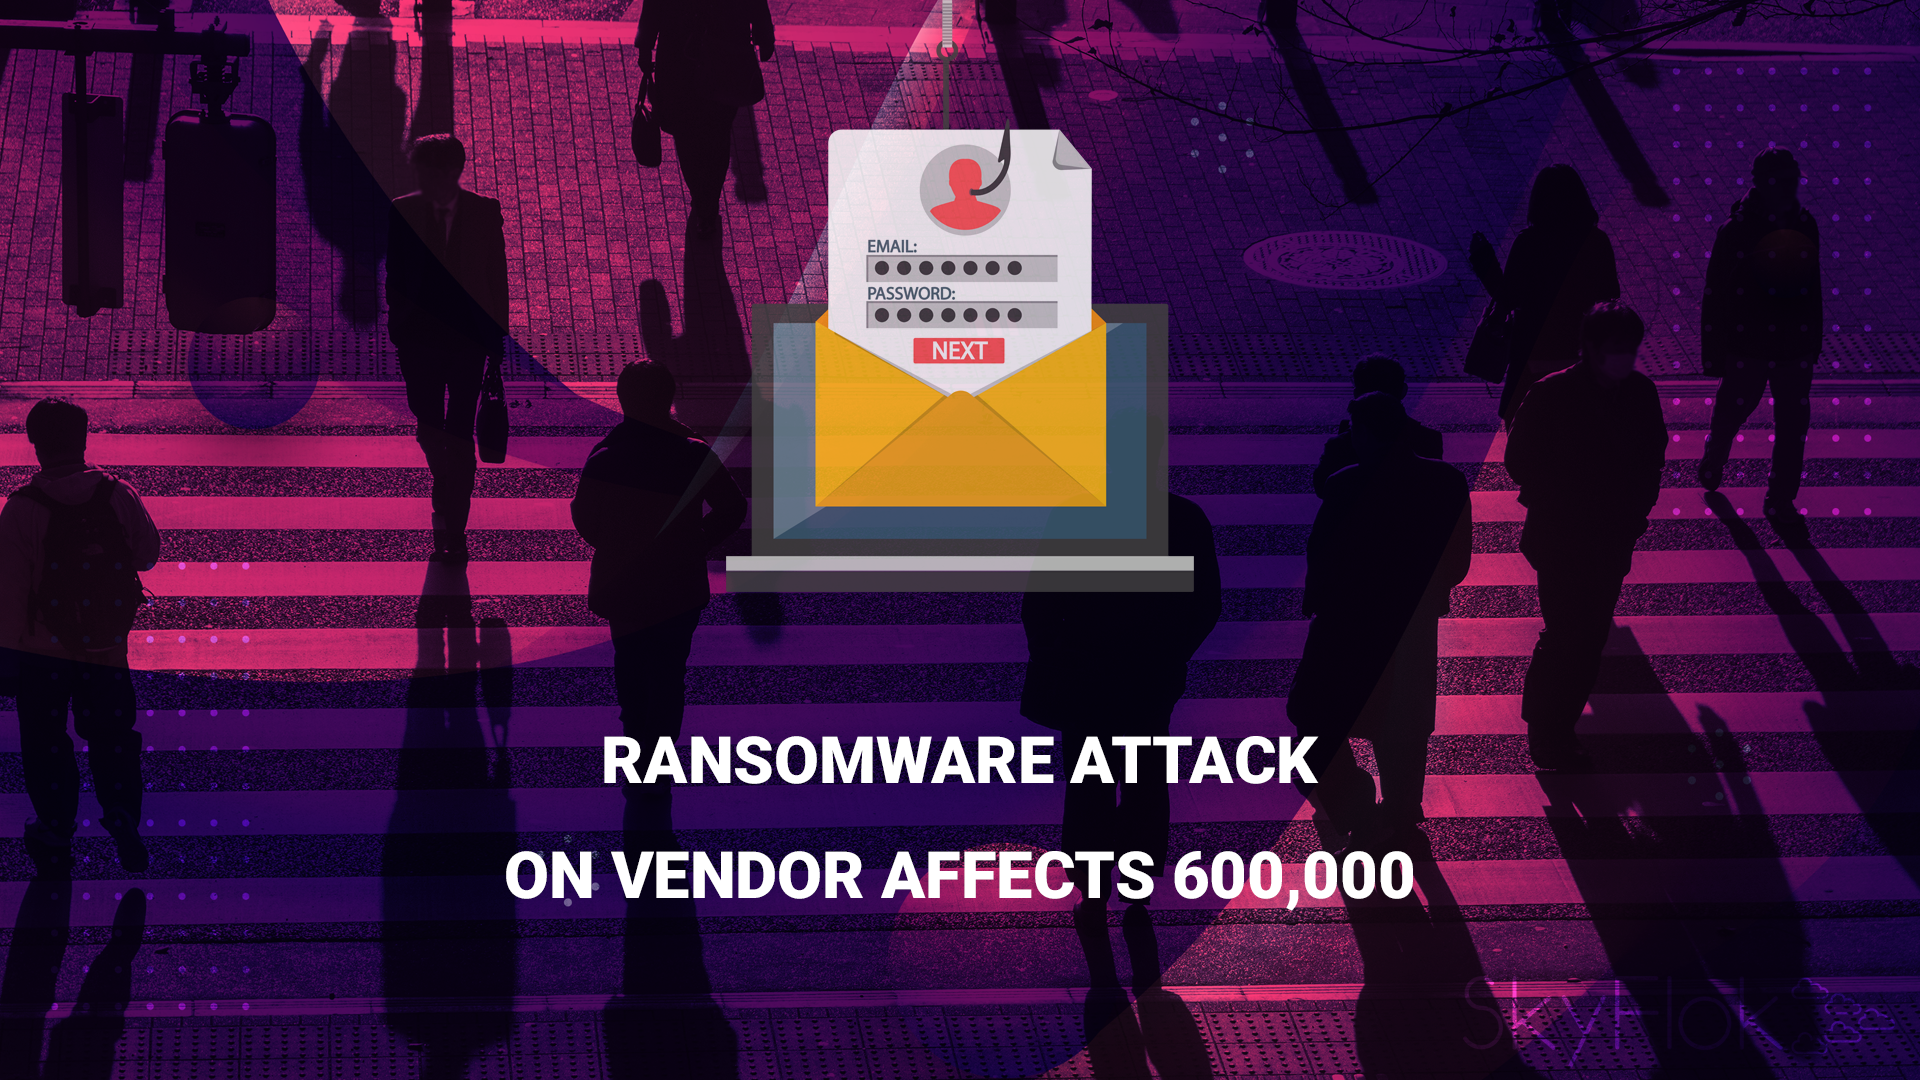 Ransomware Attack on Vendor Affects 600,000